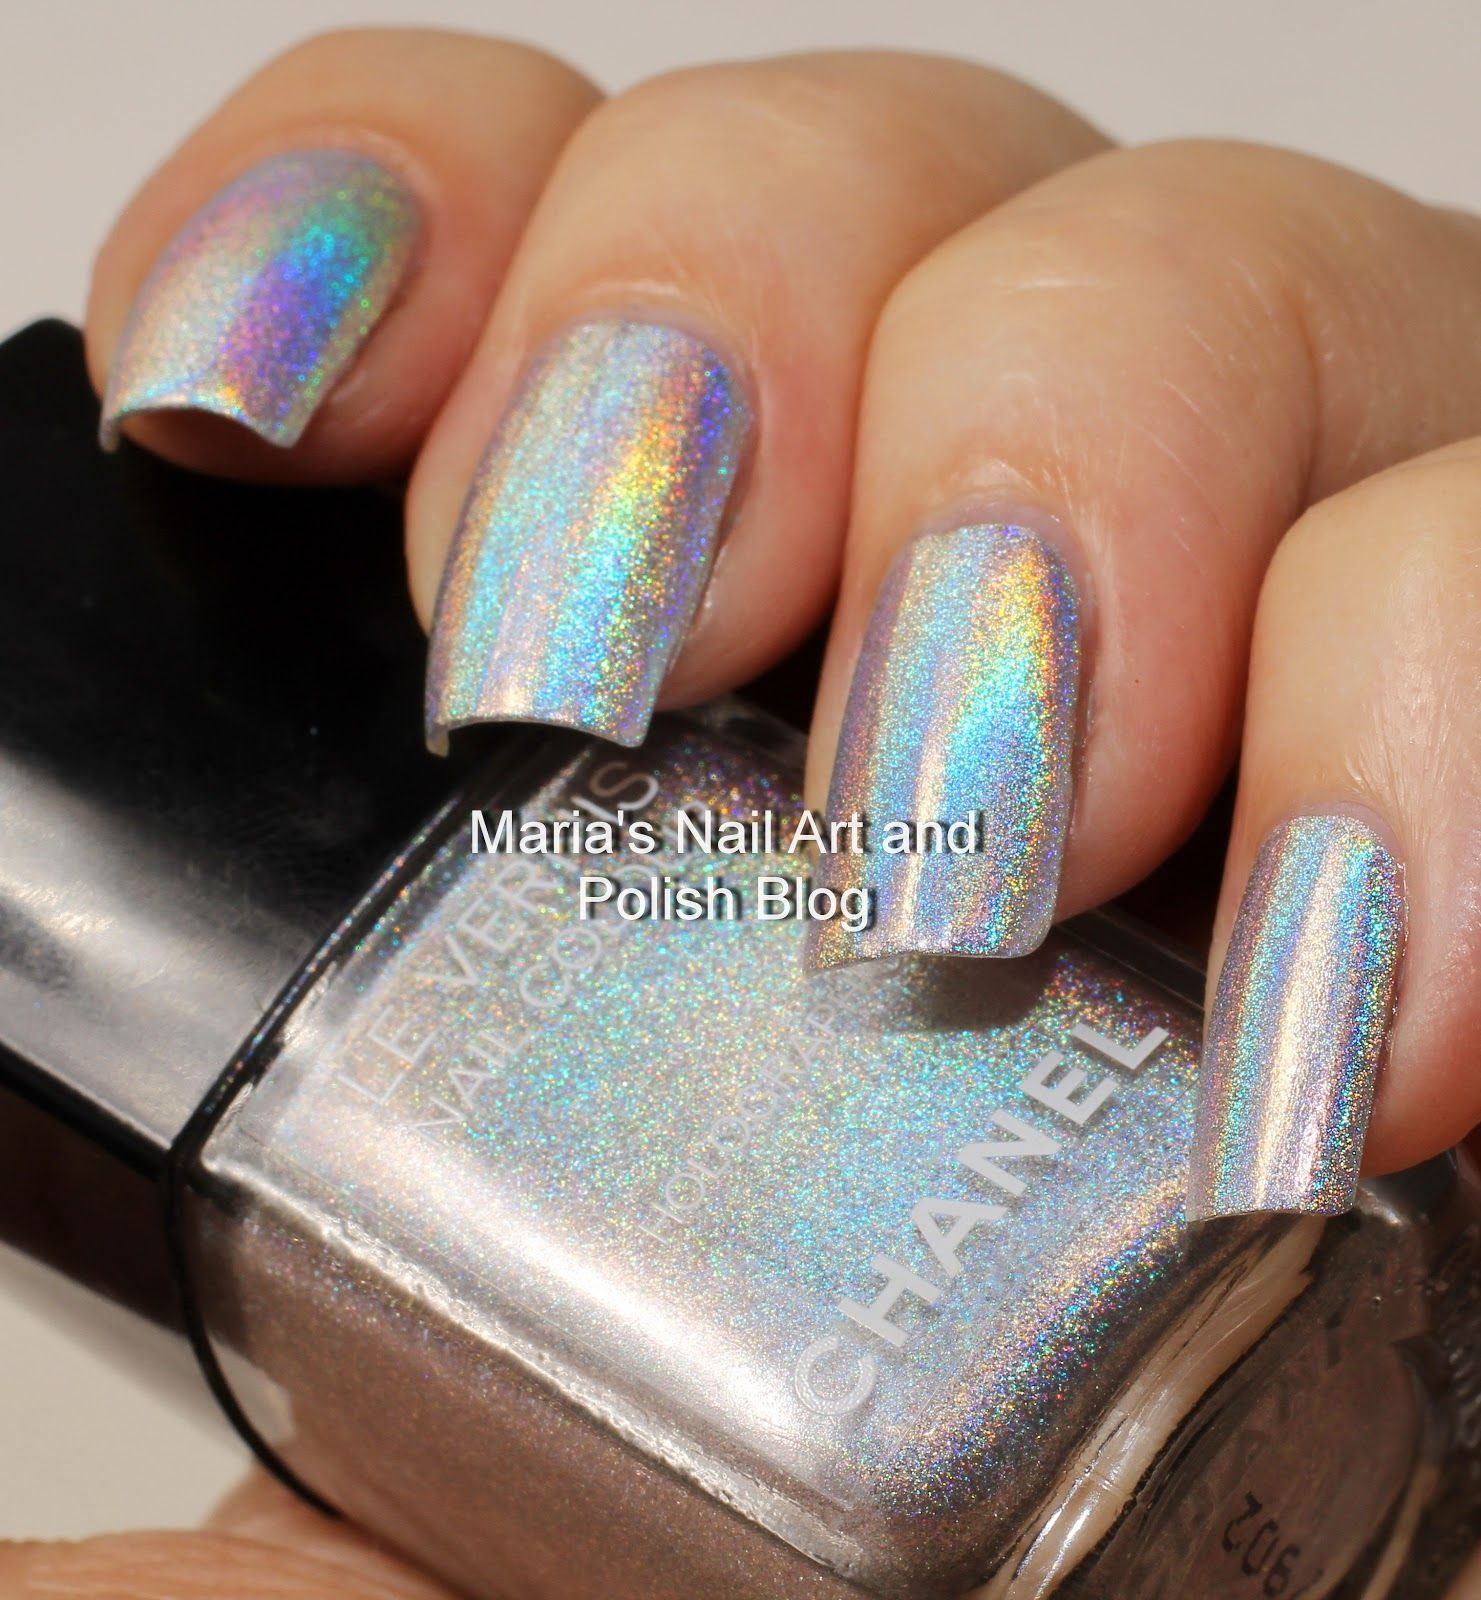 Chanel Holographic Duo Platinum Collection 2007 Nail Supplies In 2019 Chanel Nail Polish